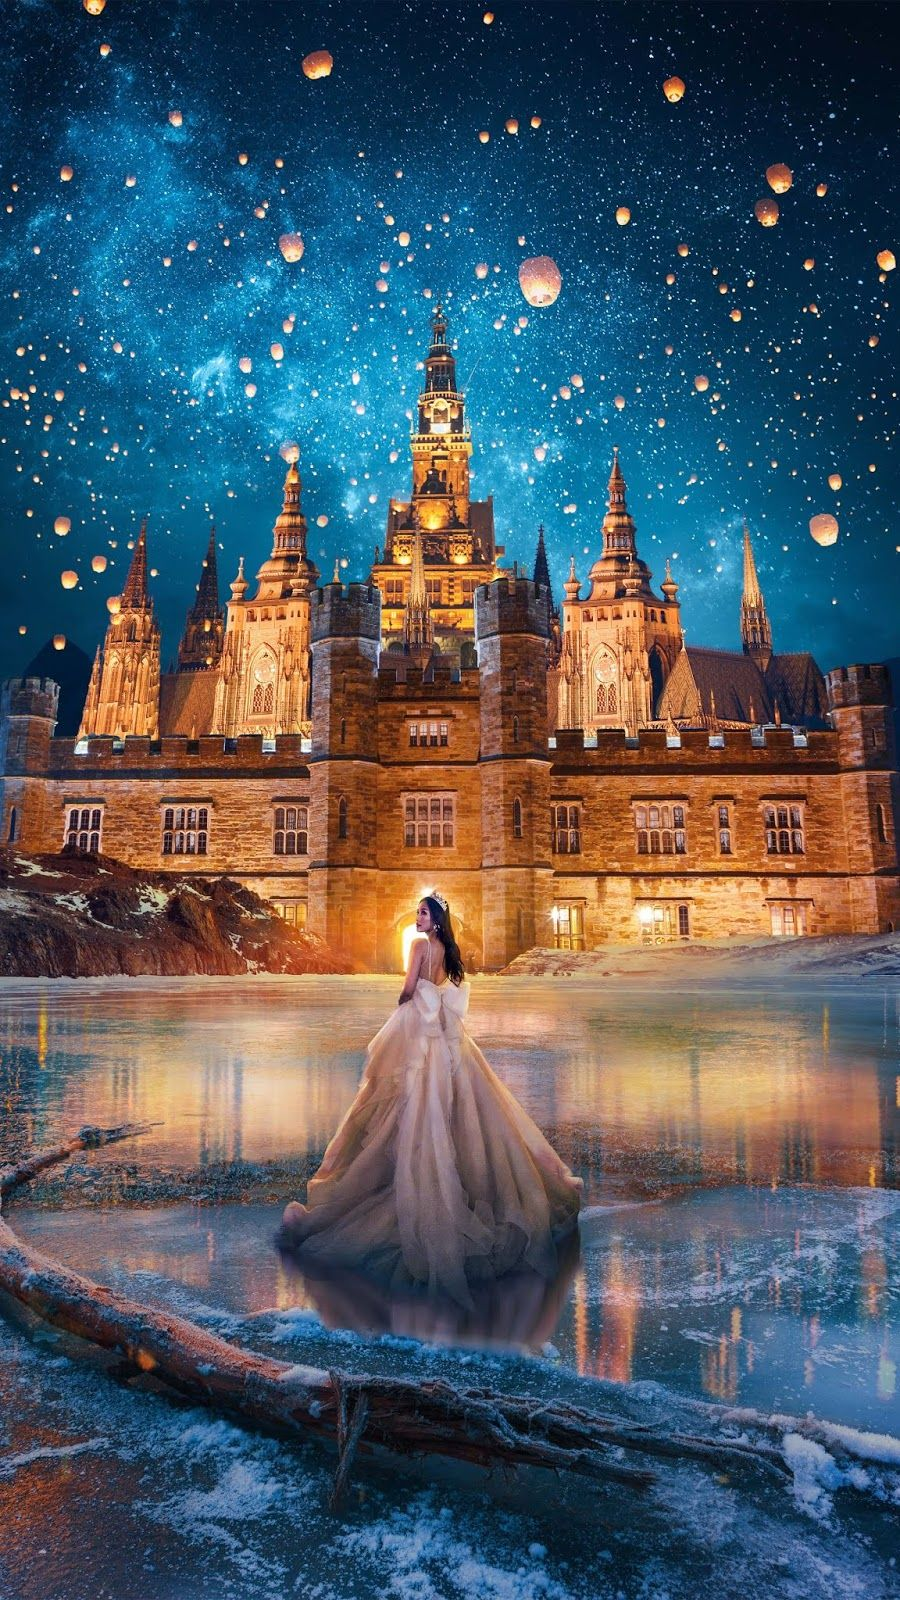 The Fairytale Wallpaper Iphone Android Background Followme Fairytale Photography Fairy Tales Pictures